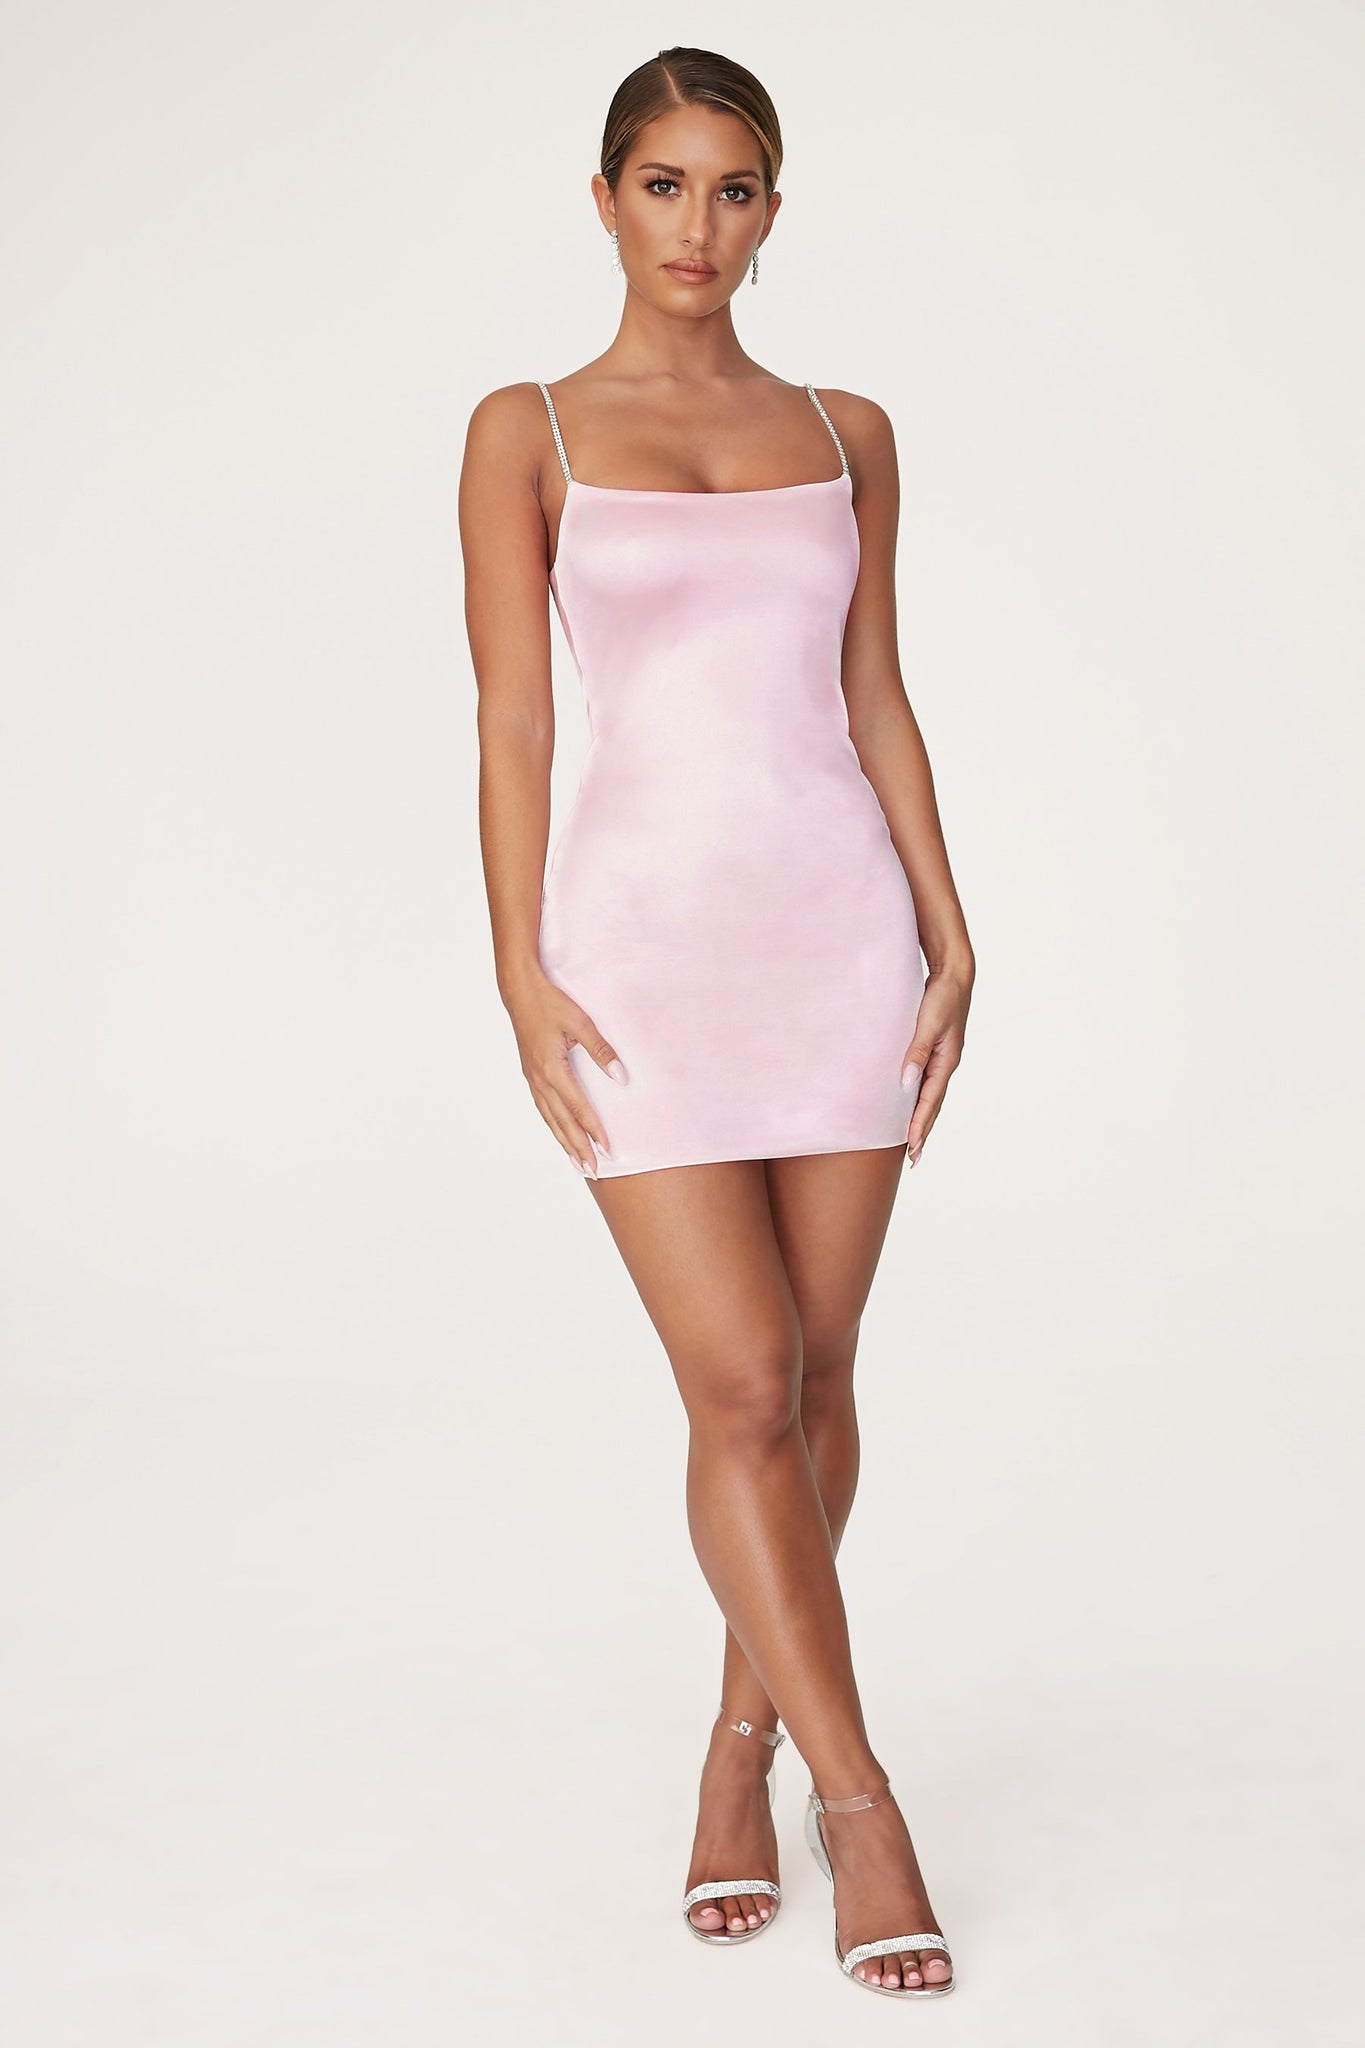 Ruby Diamante Strap Mini Dress - Baby Pink - MESHKI